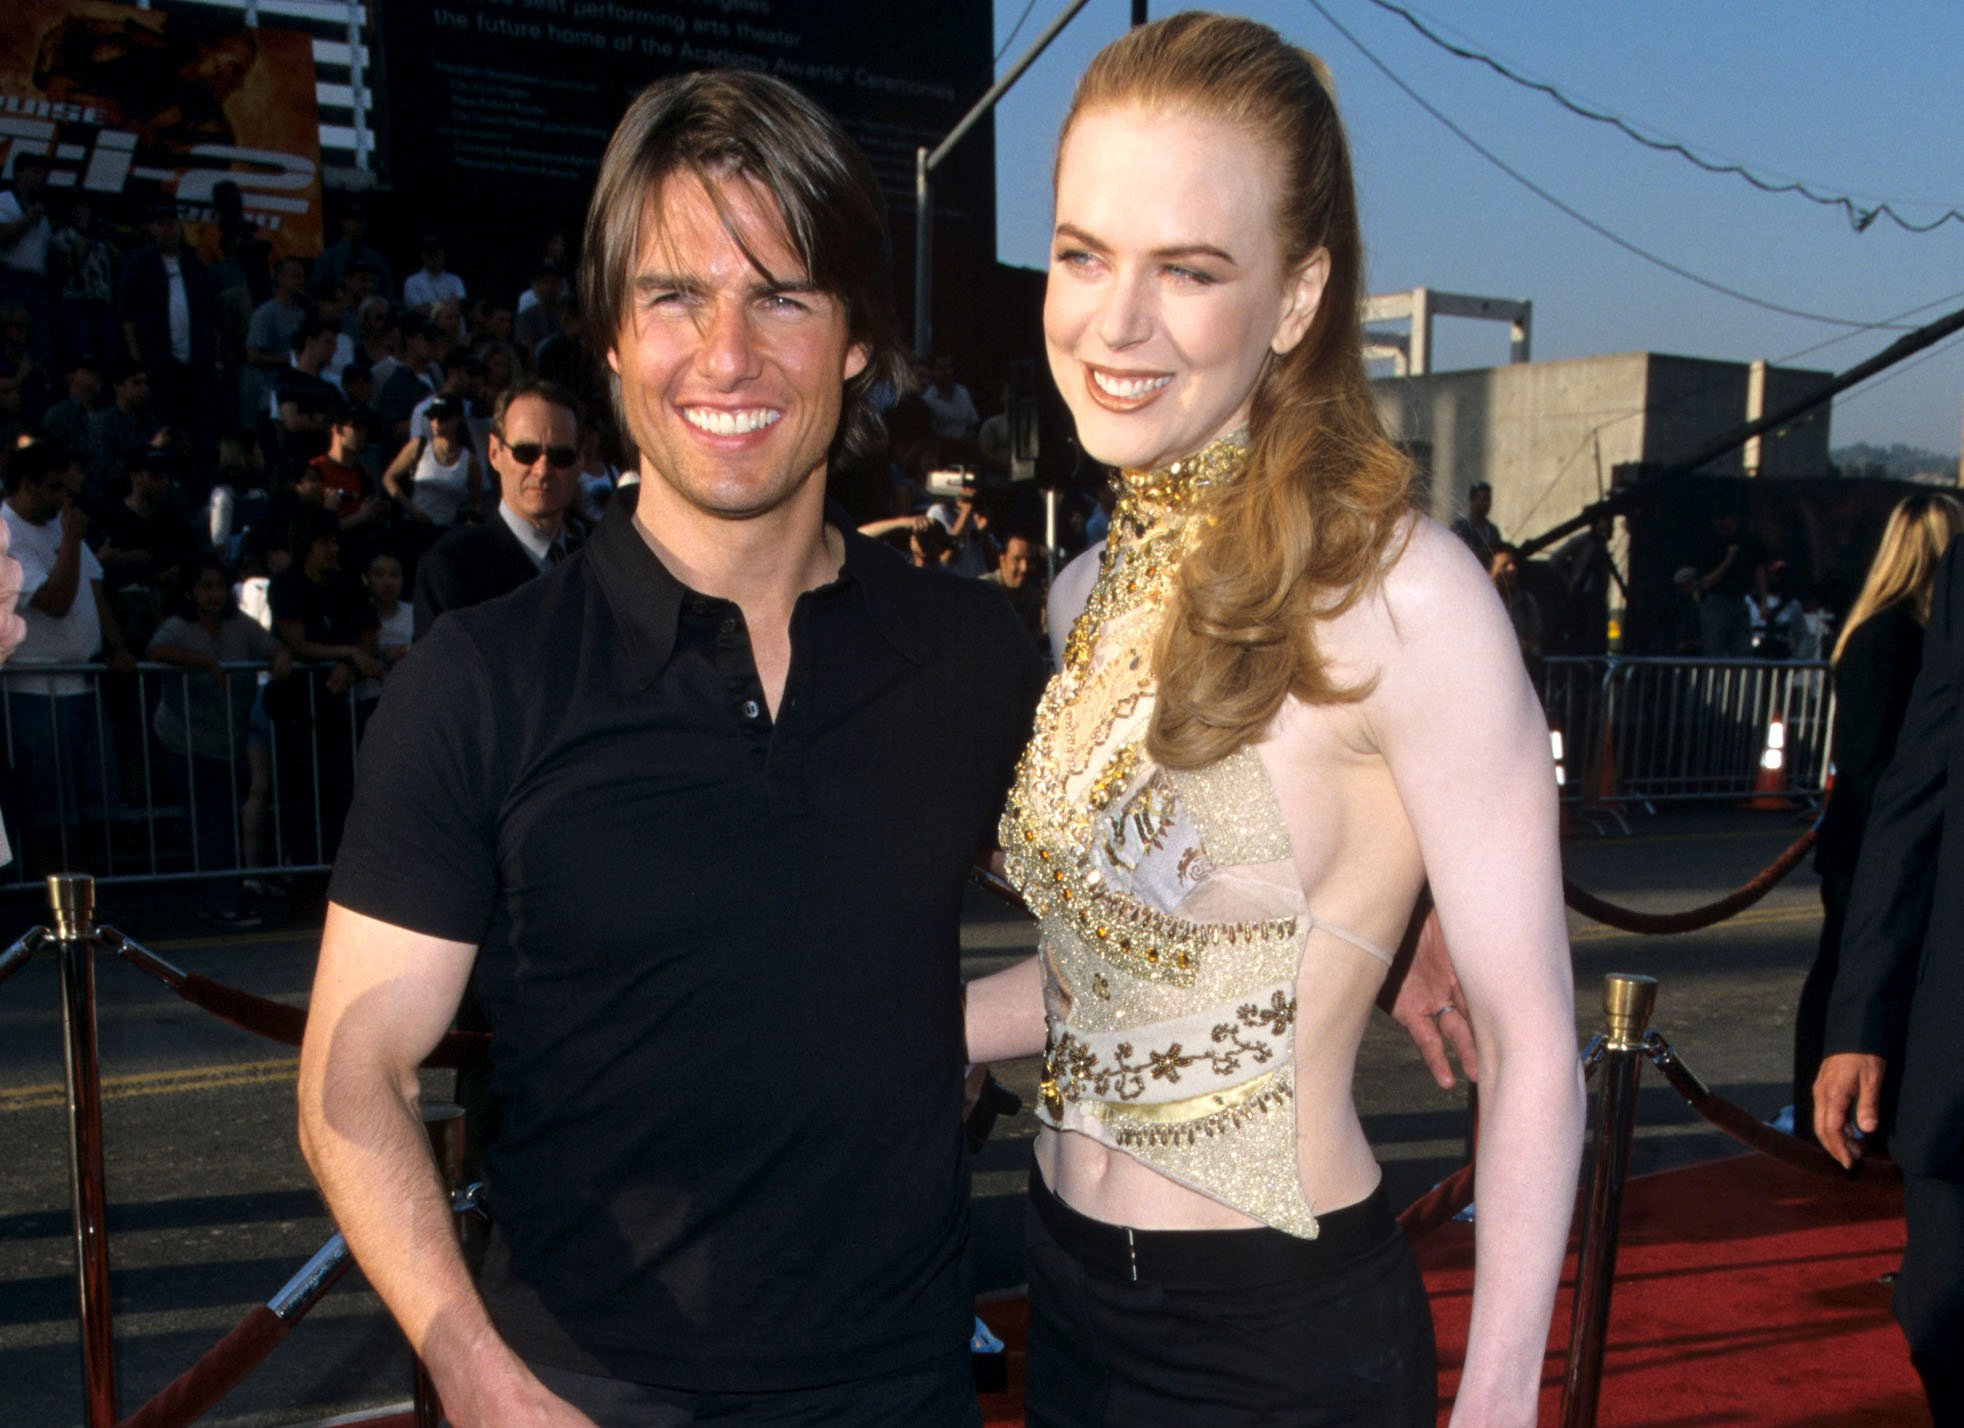 celebrity breakups Tom Cruise Nicole Kidman